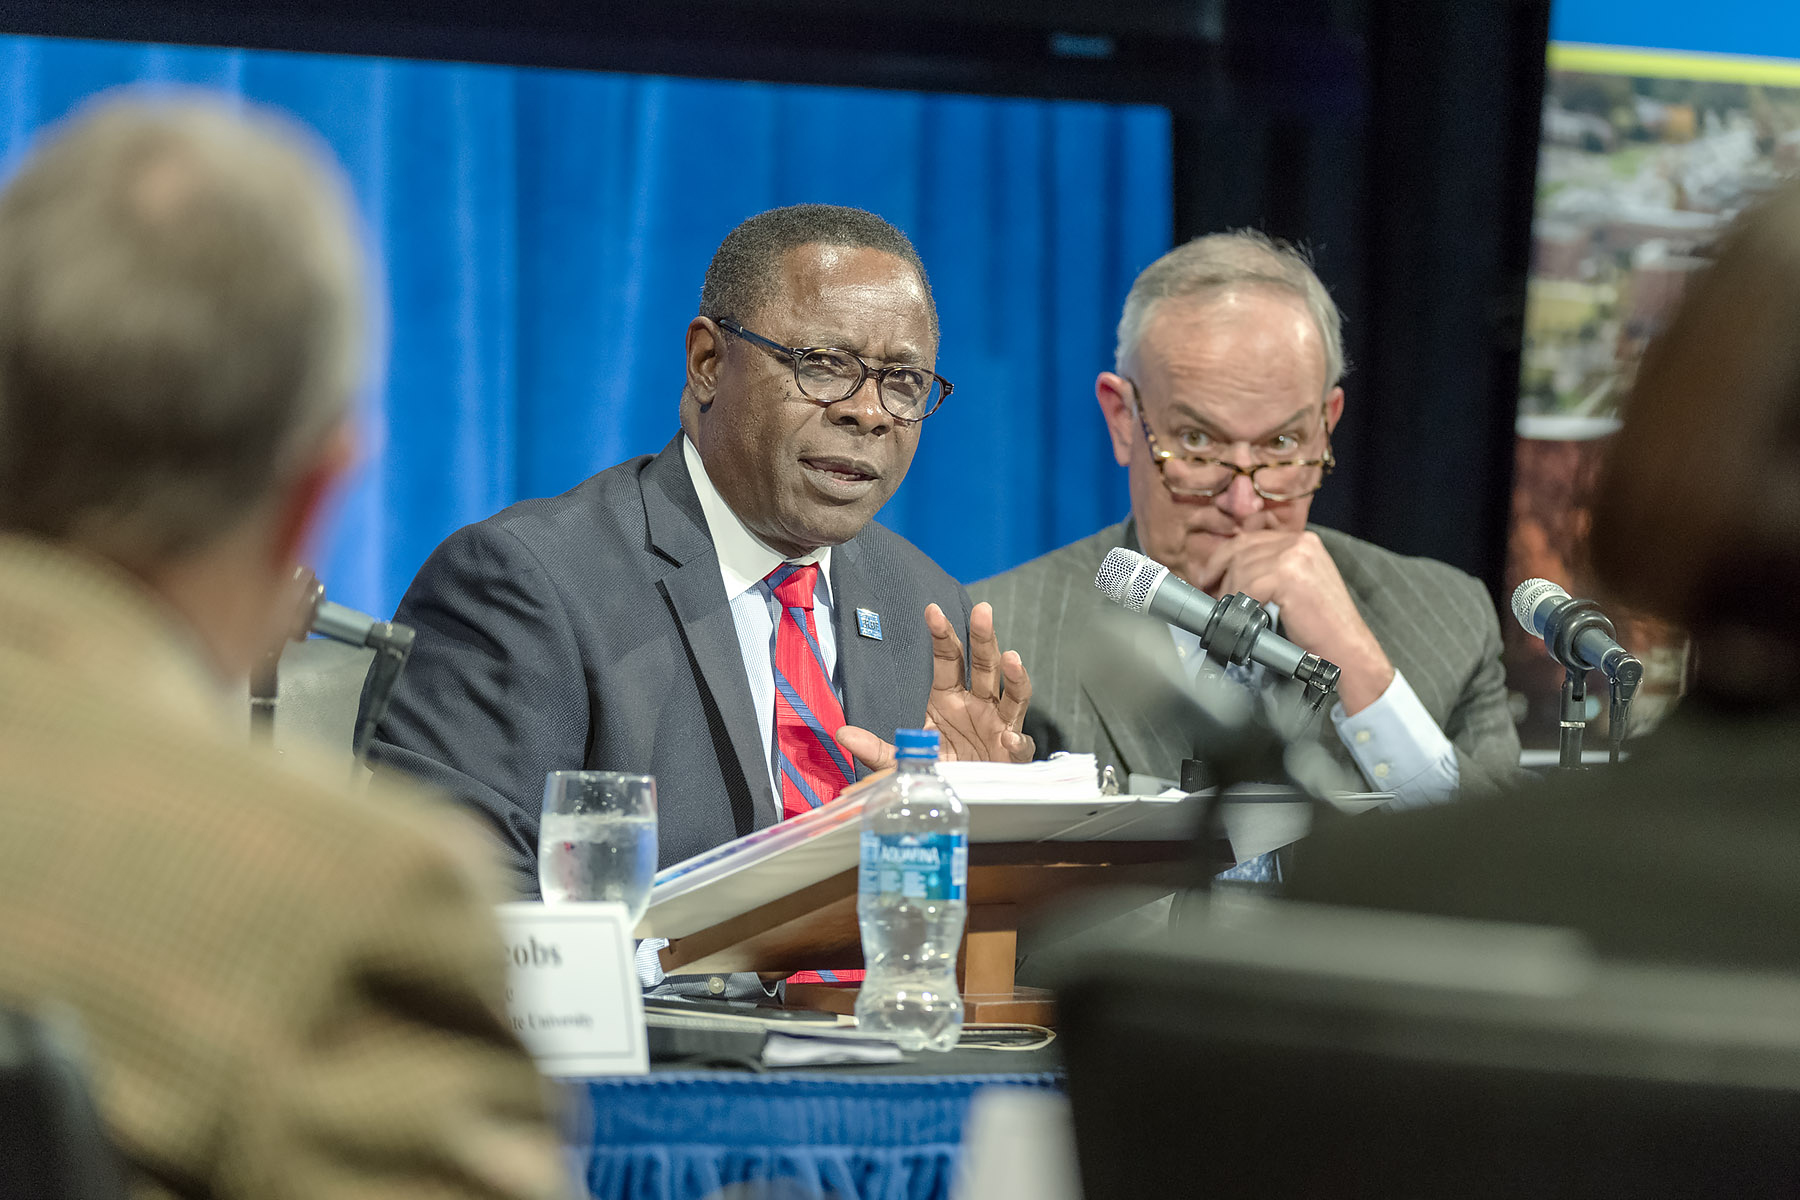 MTSU Board of Trustees OK's Academic Program Changes, Policy Updates